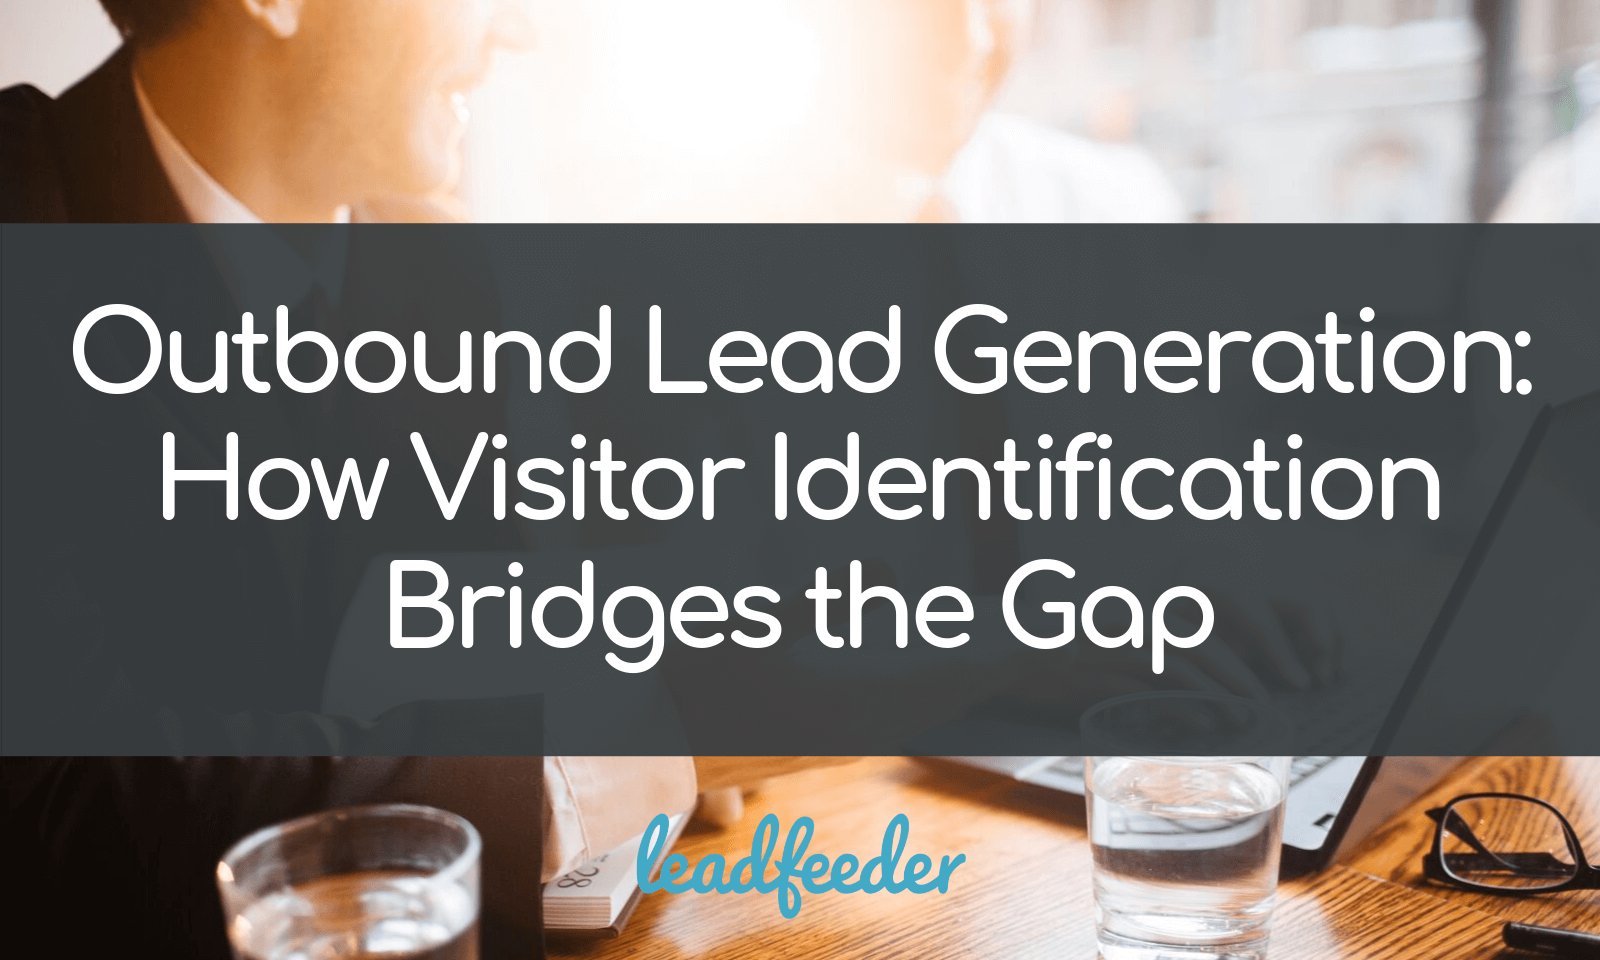 Outbound Lead Generation: How Visitor Identification Bridges the Gap